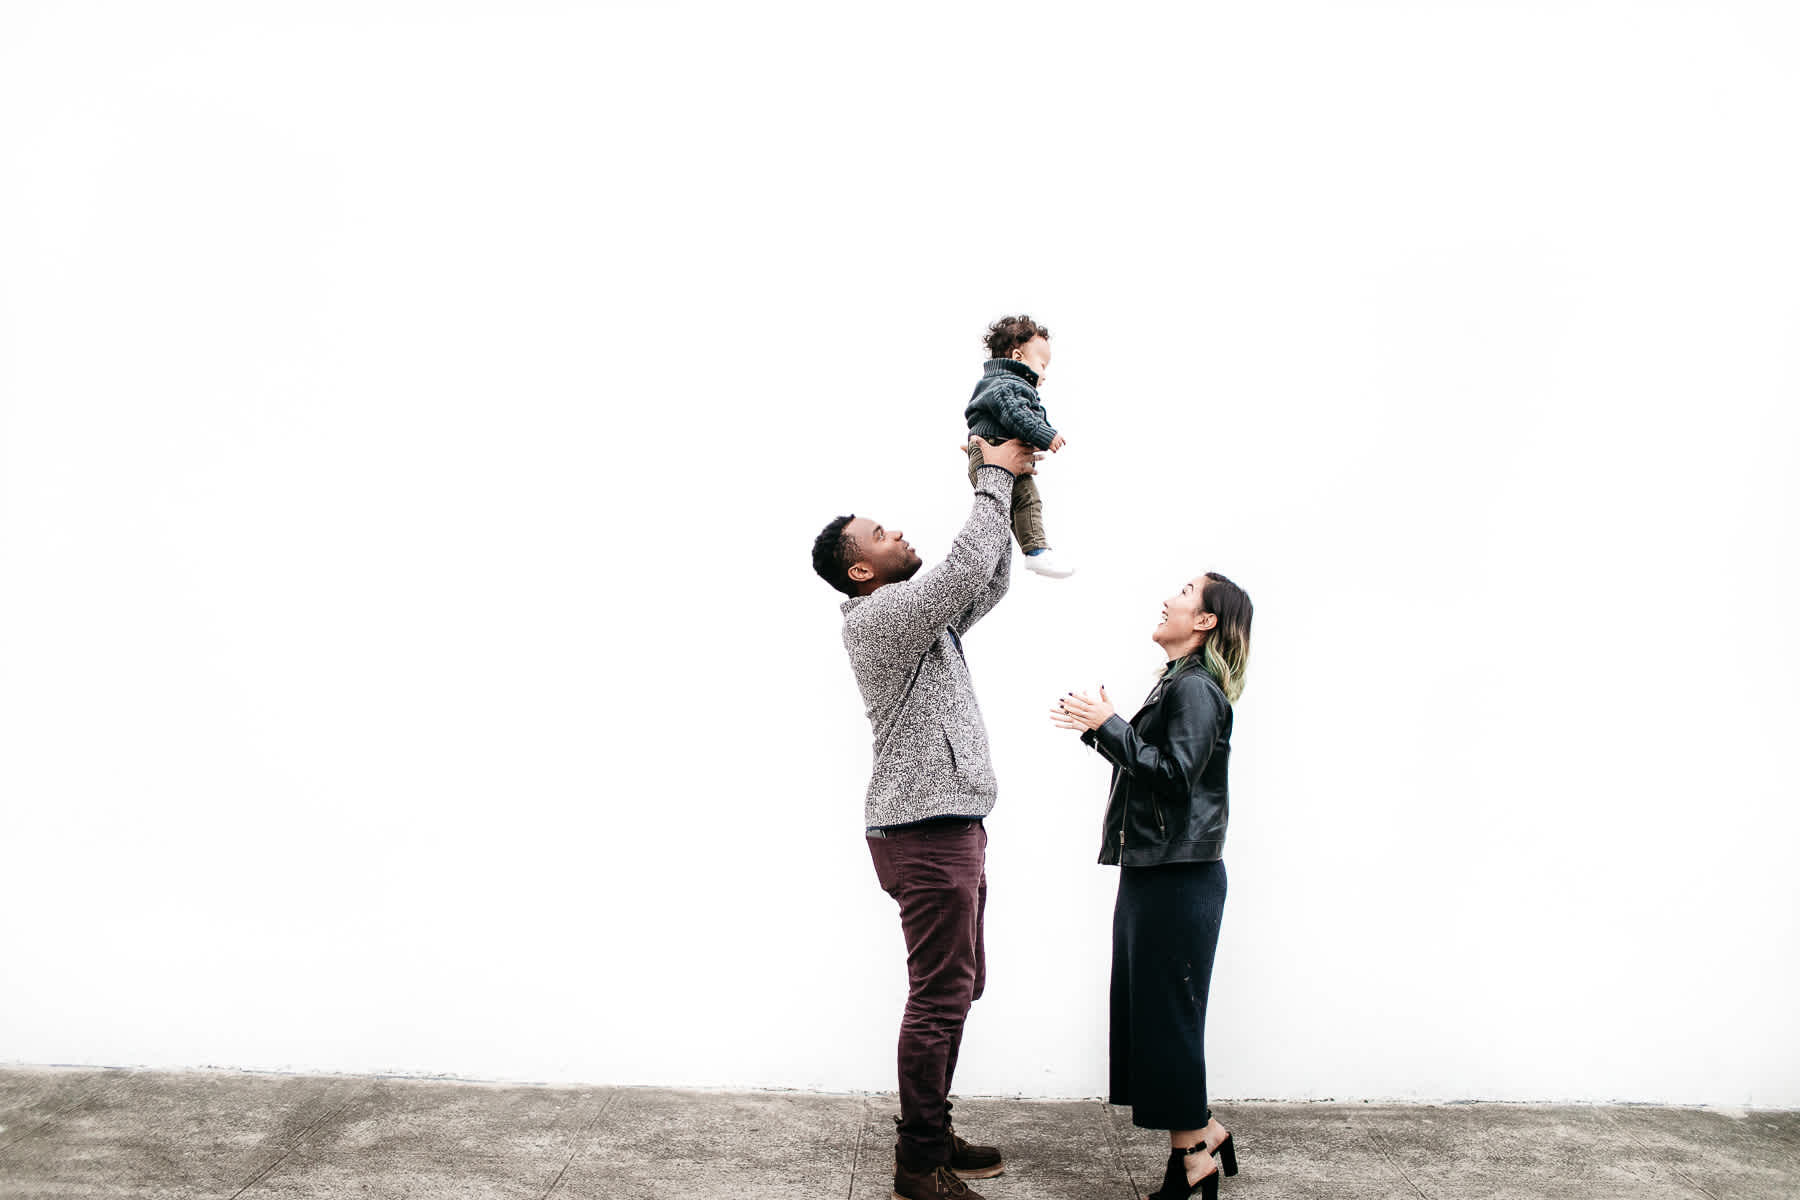 oakland-redwoods-urban-family-session-30